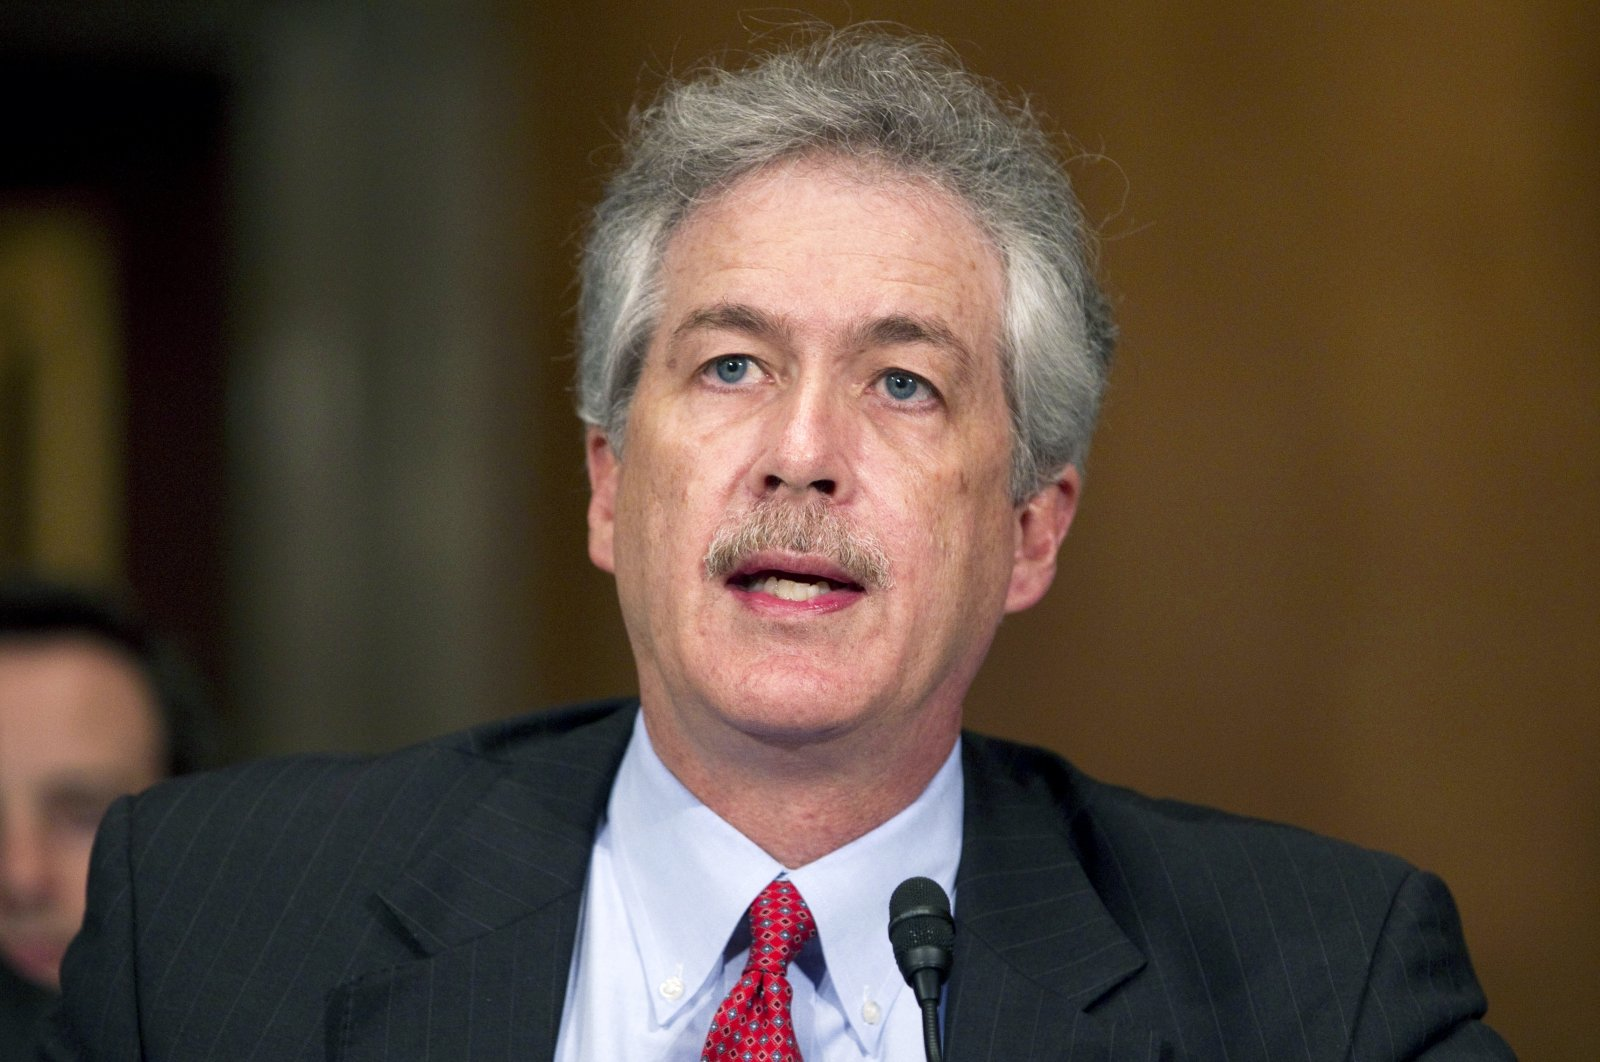 William Burns testifies before the Senate Foreign Relations Committee hearing on his nomination to be deputy secretary of state, on Capitol Hill, Washington, D.C., May 24, 2011. (AP Photo)